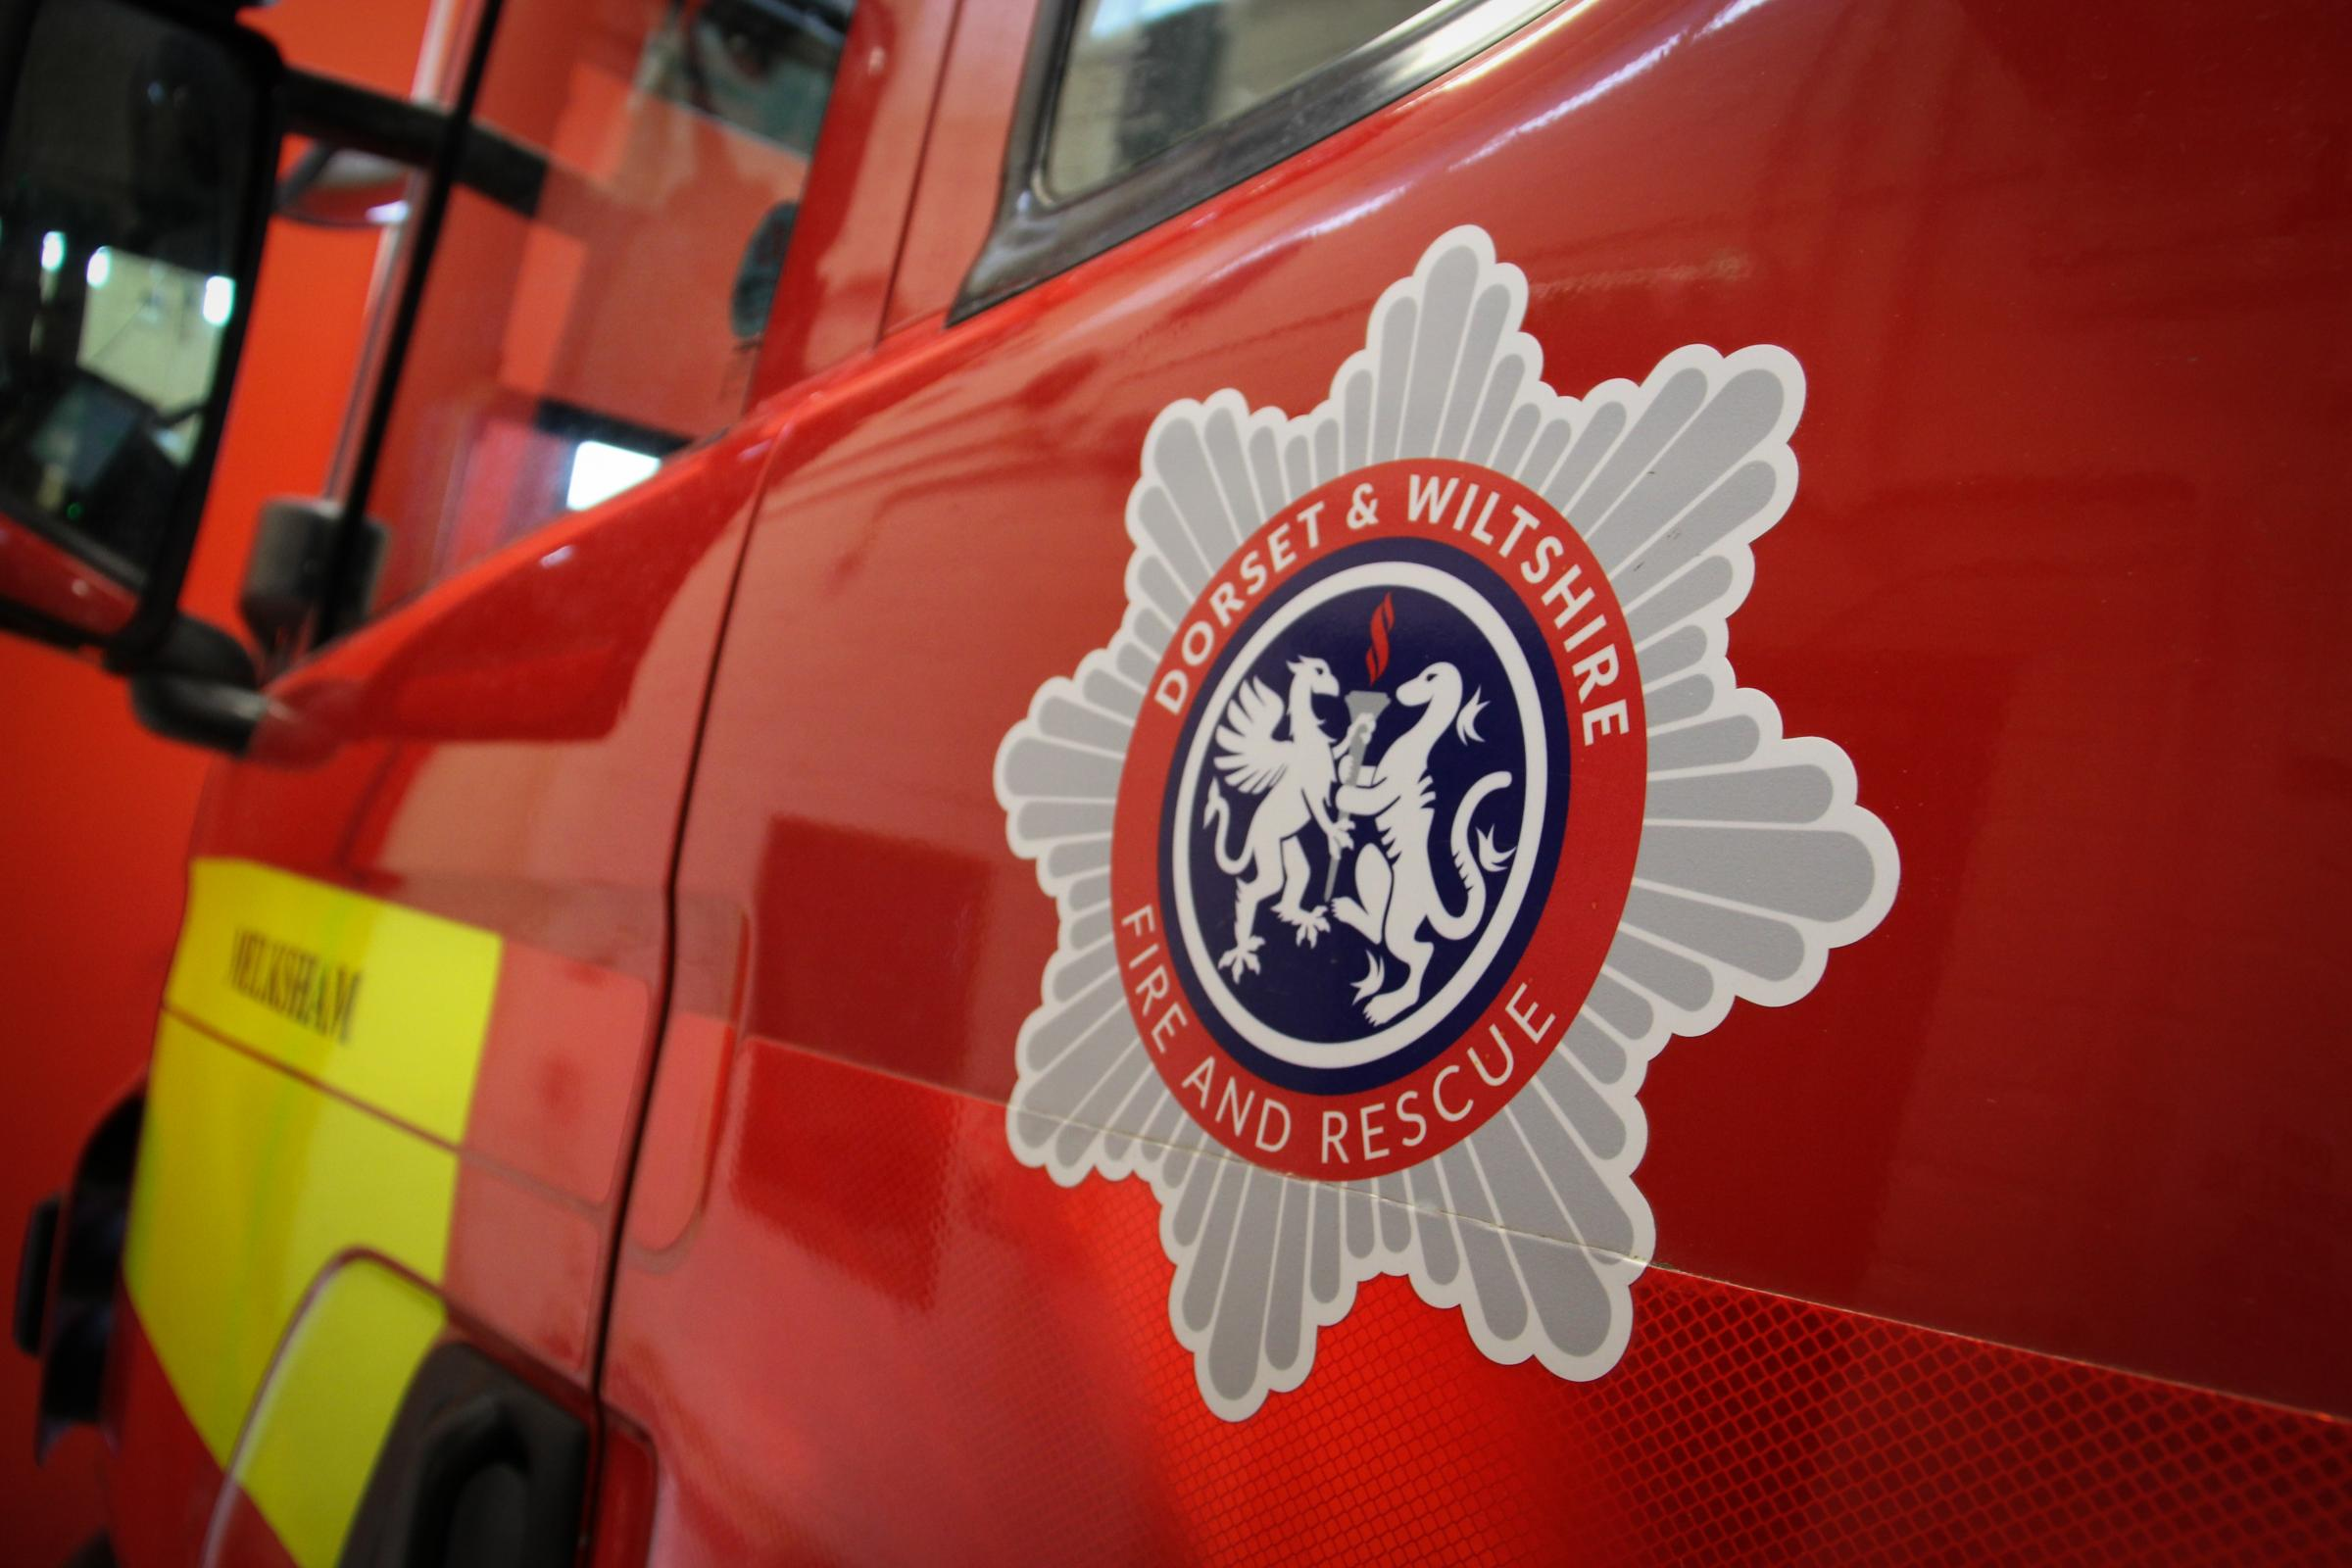 new stock photos for your libraries from Dorset & Wiltshire Fire and Rescue Service..